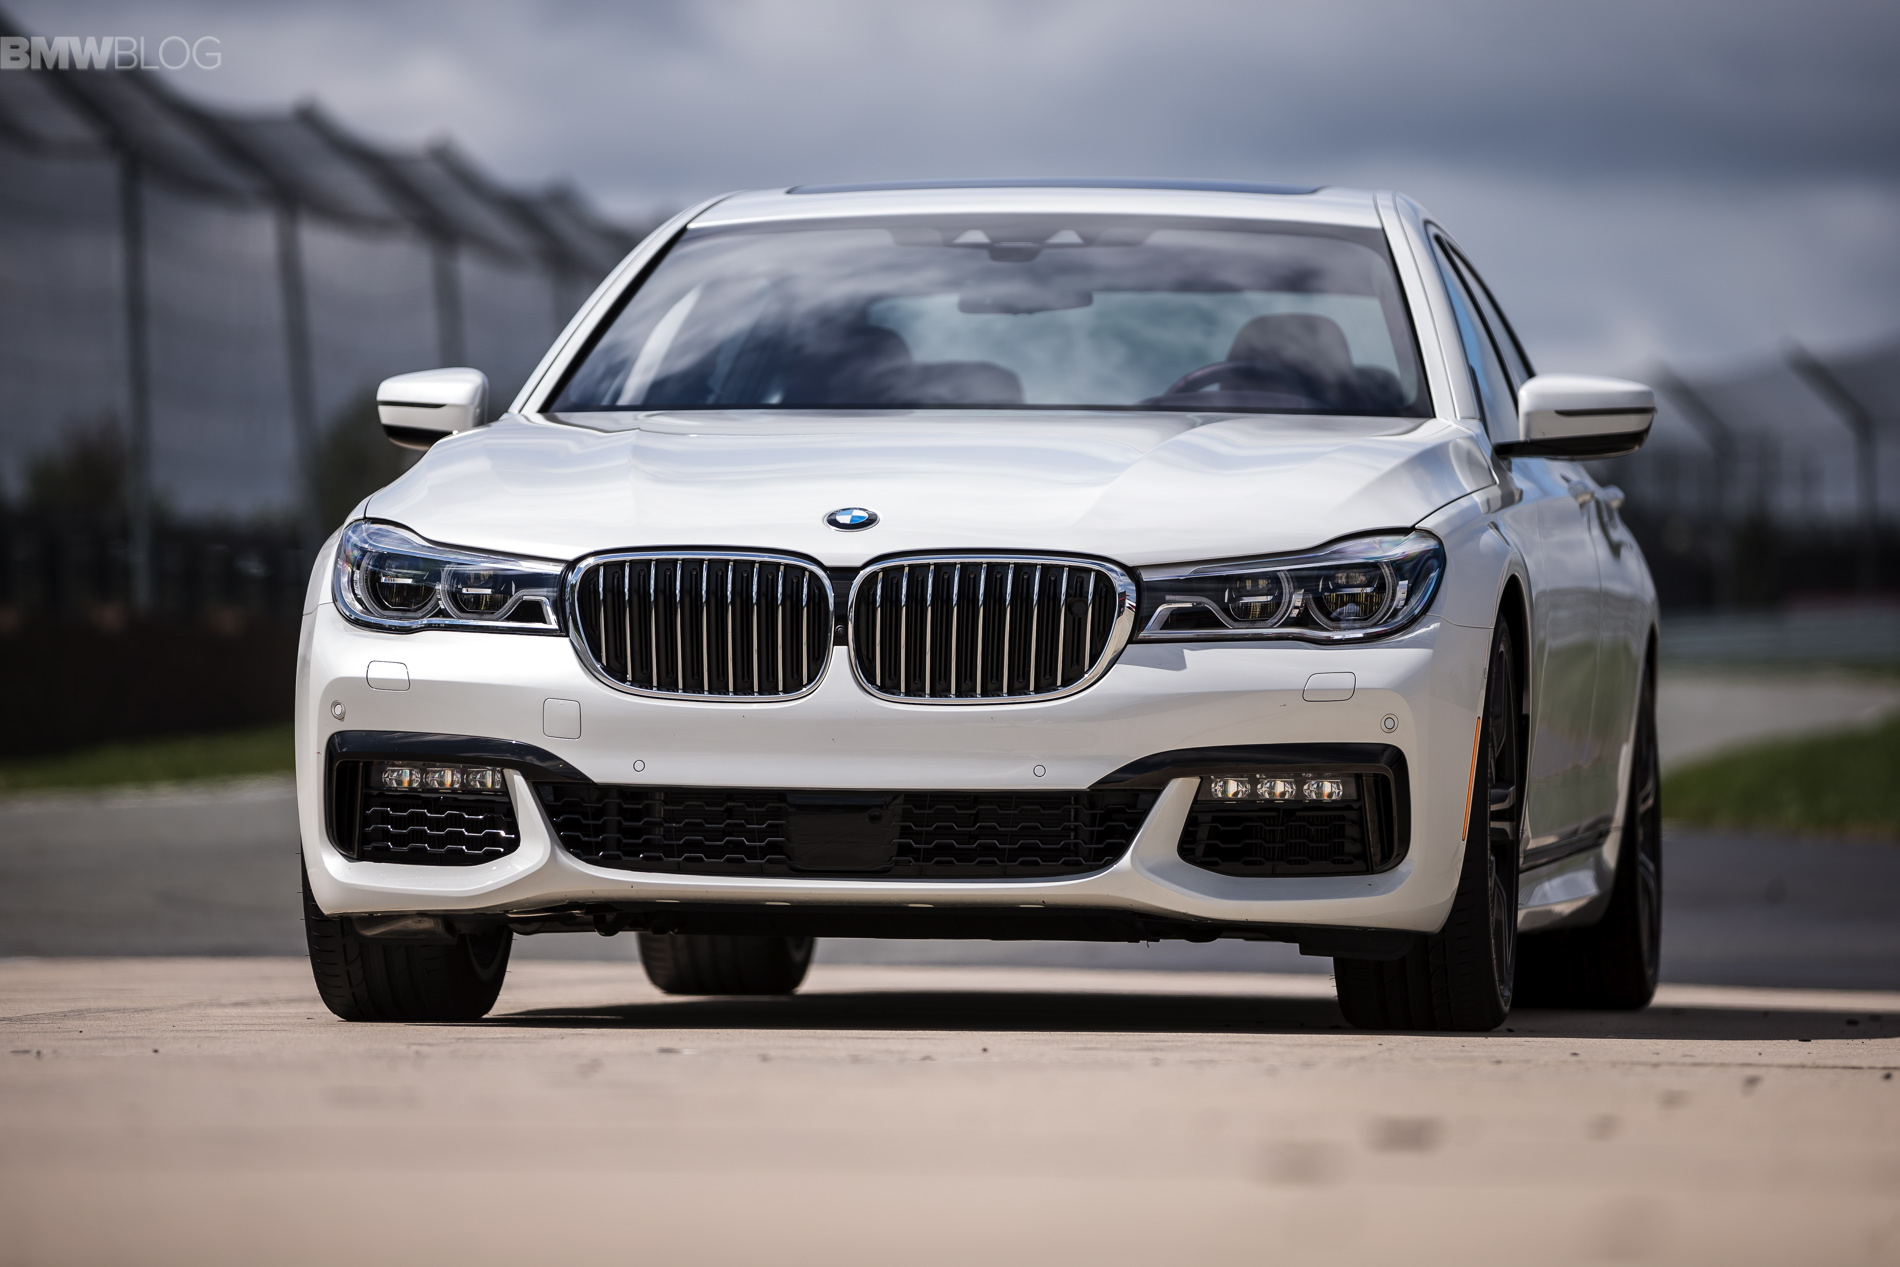 2016 bmw 7 series launch new york images 1900x 1200 83